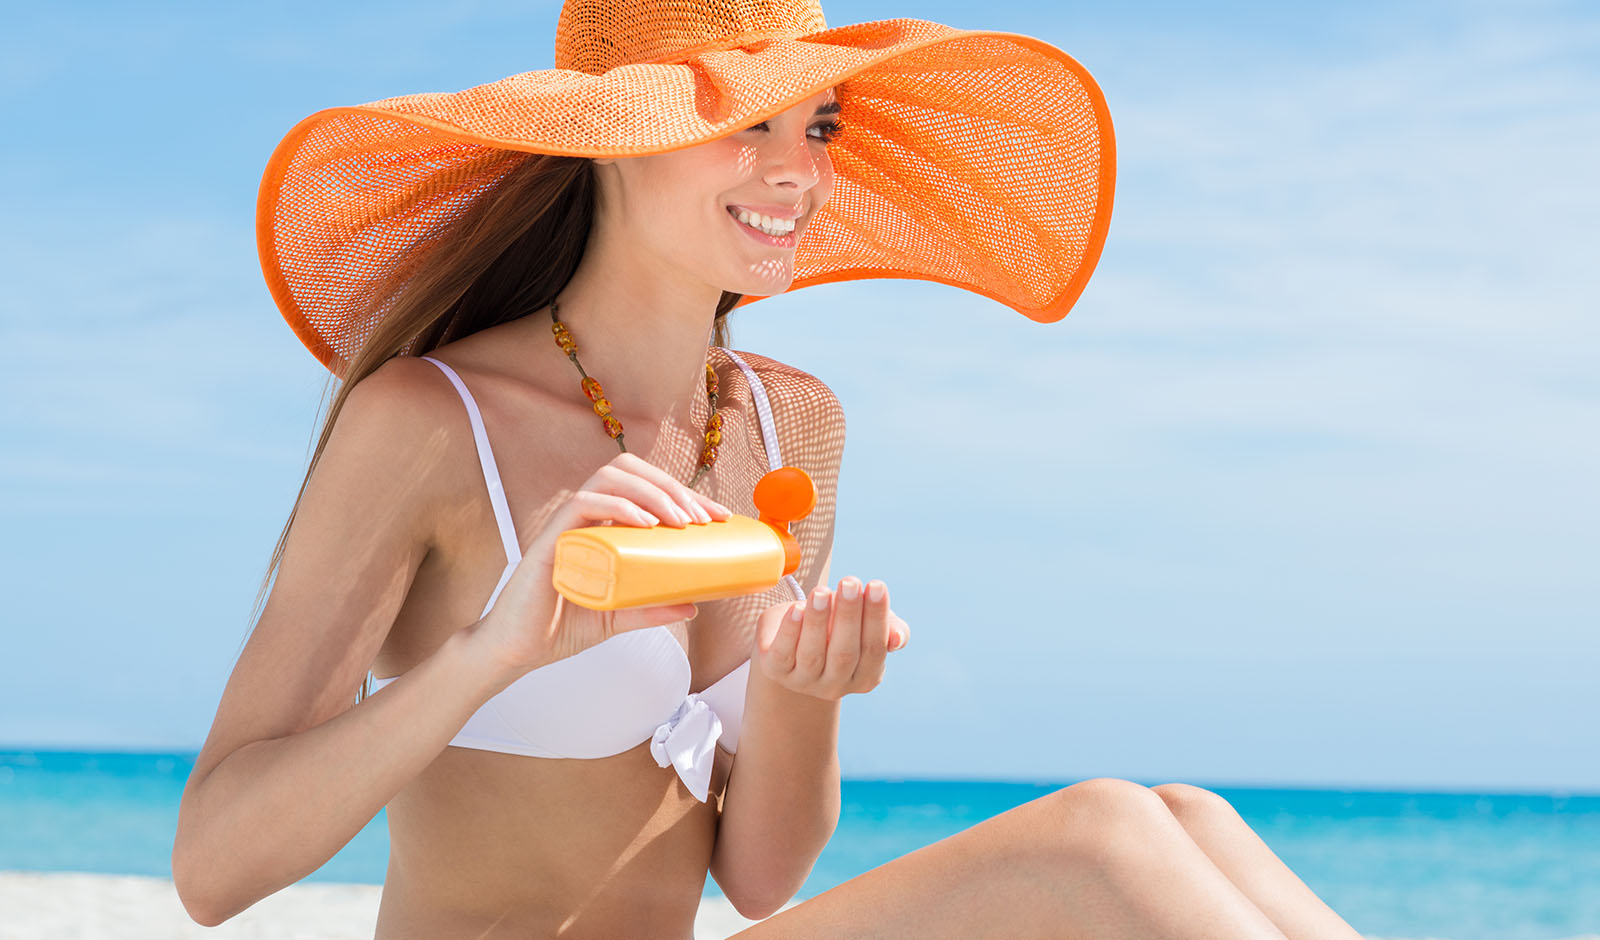 importance-of-sunscreen-woman-applying-sunscreen-at-the-beach-main-image